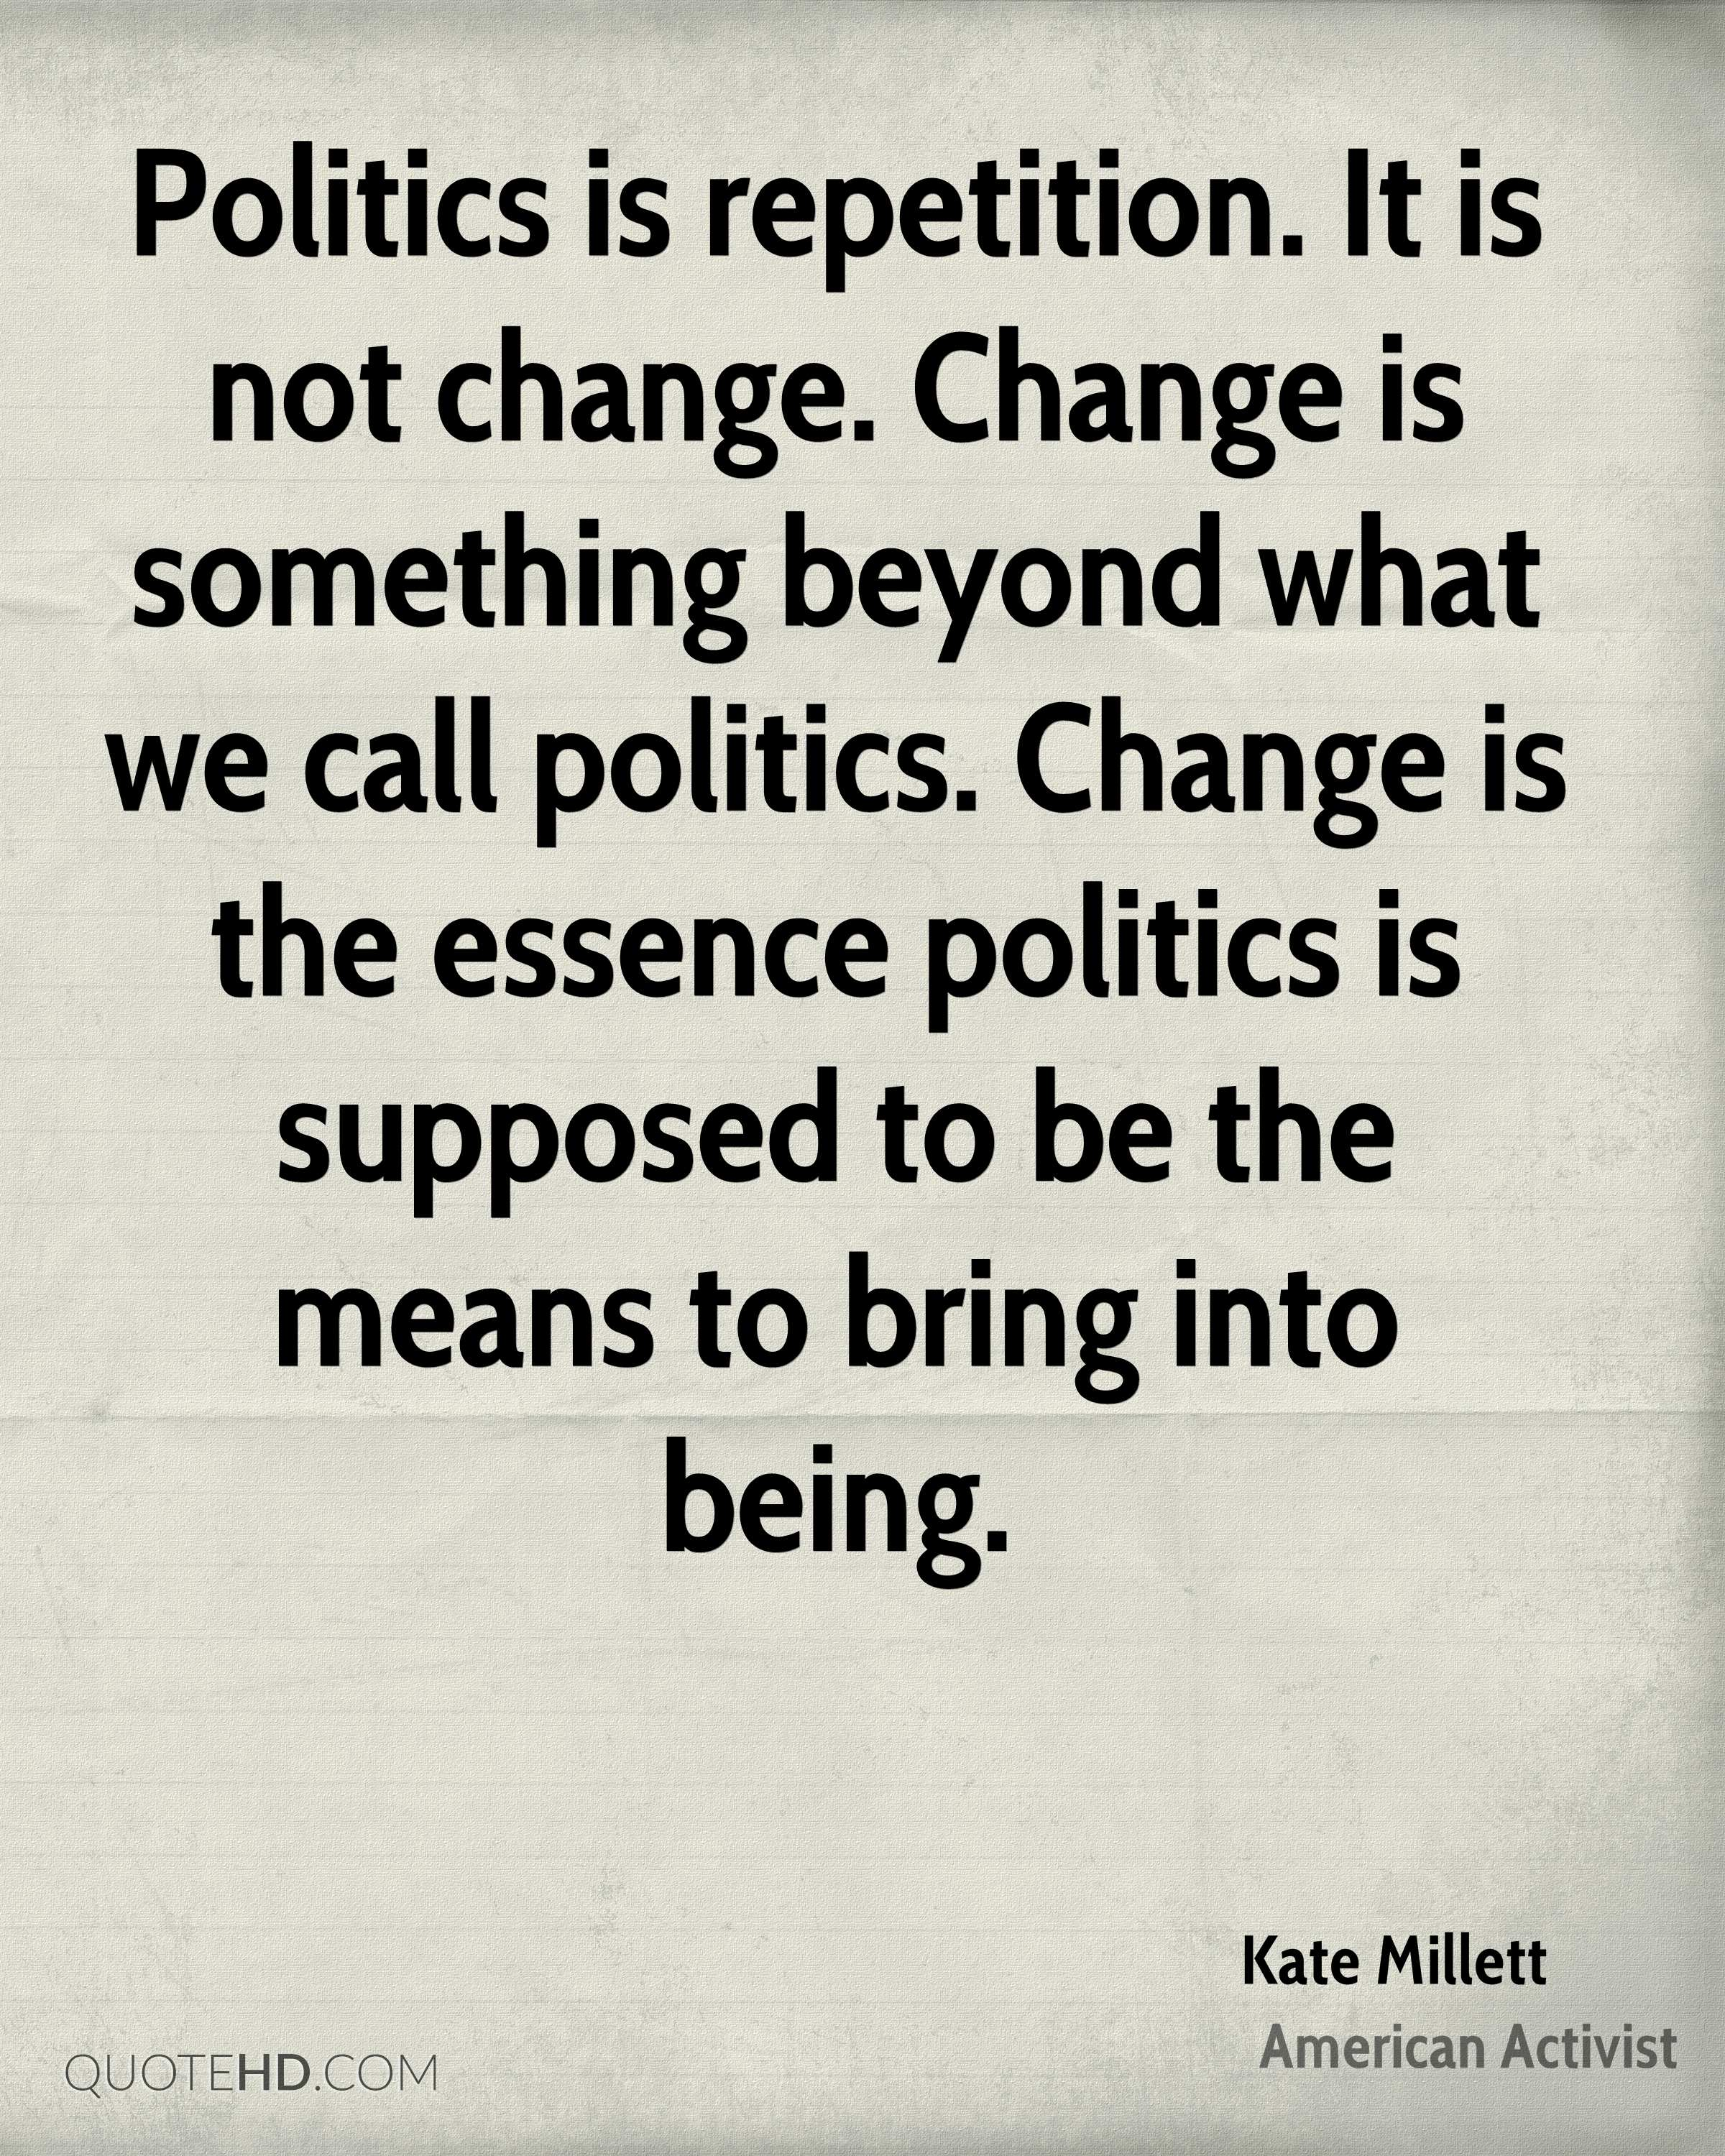 Politics is repetition. It is not change. Change is something beyond what we call politics. Change is the essence politics is supposed to be the means to bring into being.